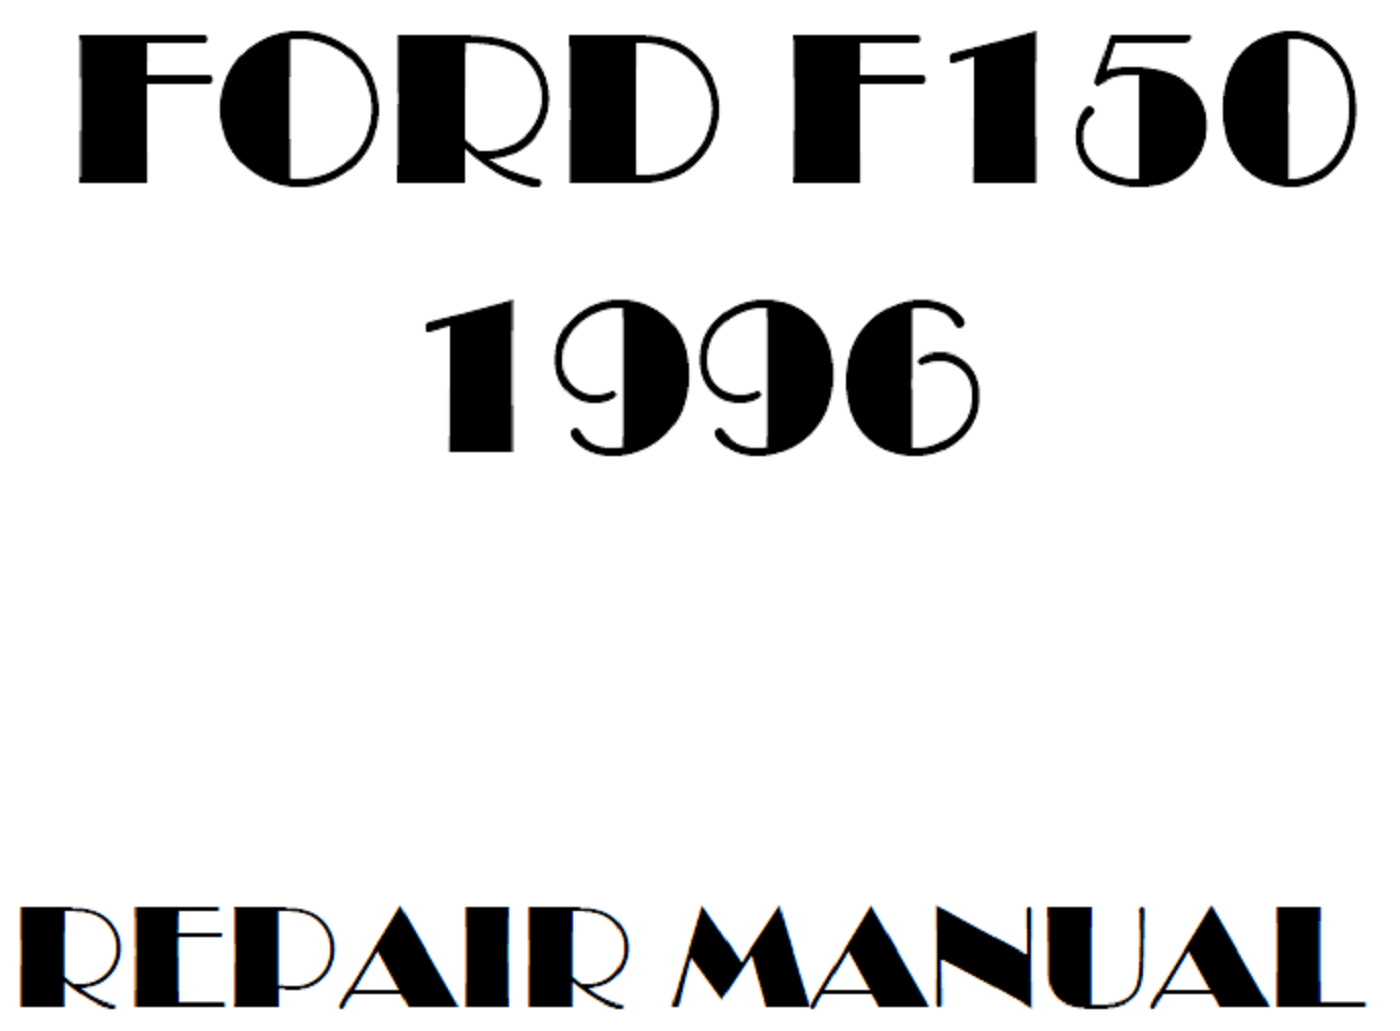 1996 Ford F150 repair manual